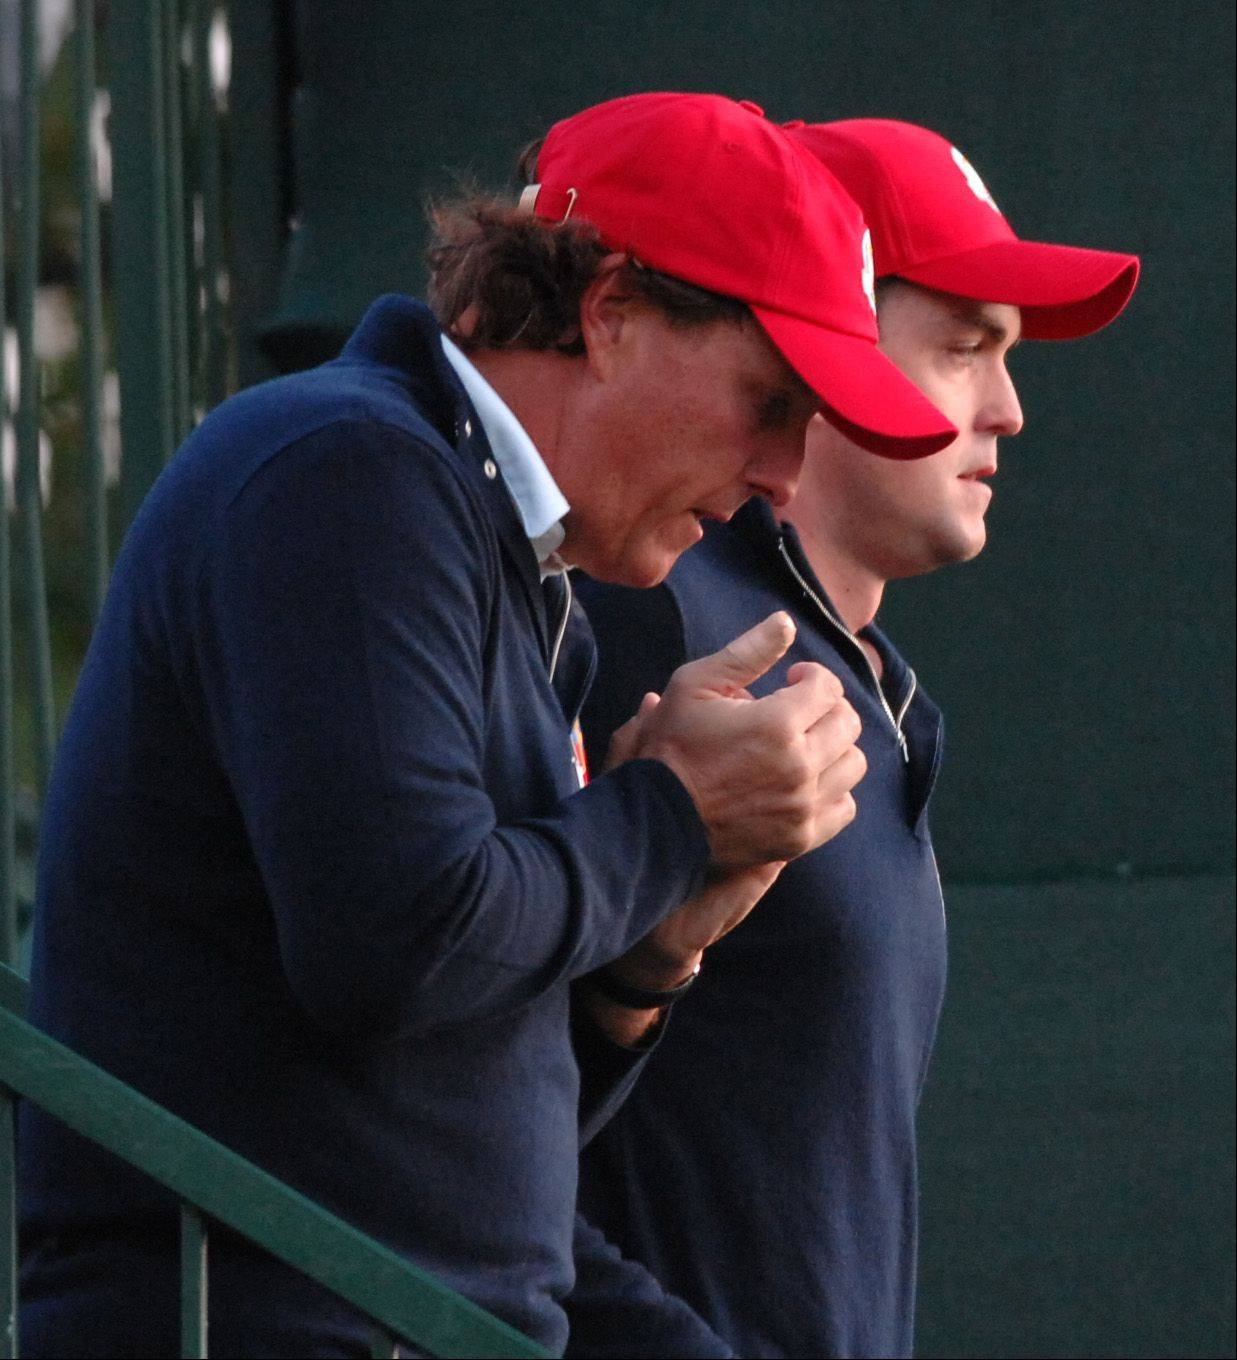 Phil Mickelson warms his hands on a chilly fall morning at Medinah Country Club as he walks to the first tee with teammate Keegan Bradley.